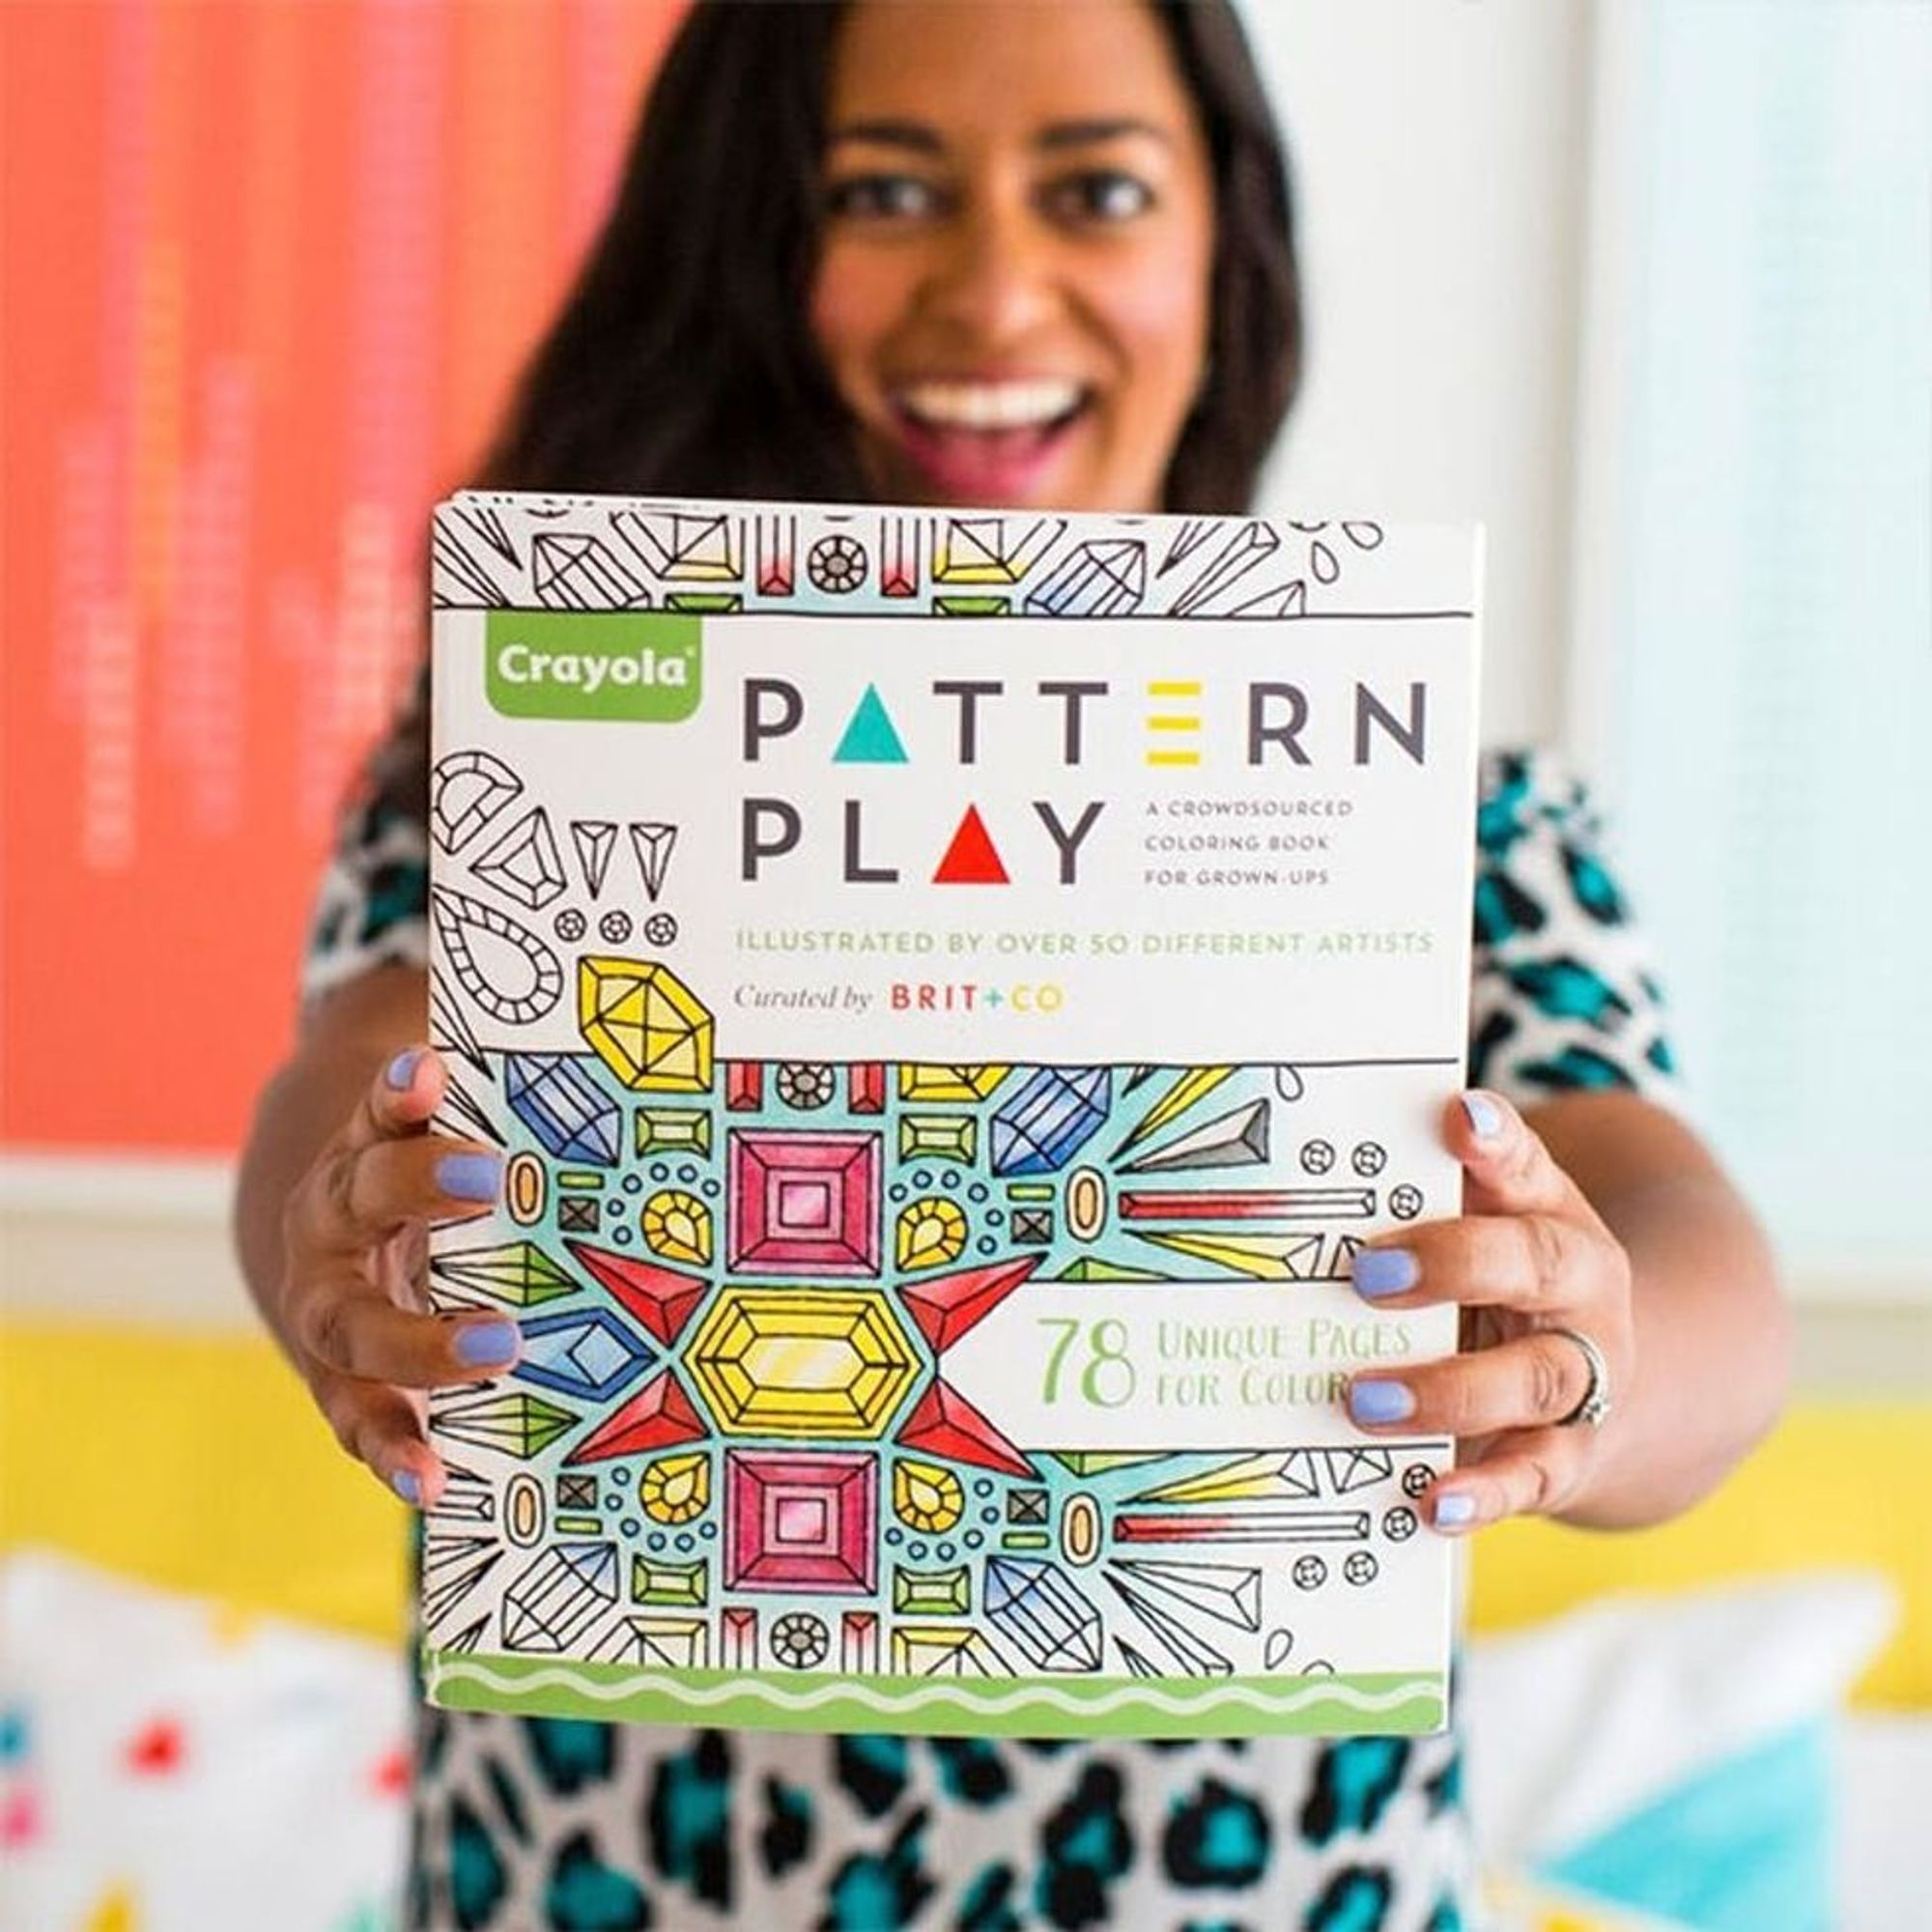 13 Family-Friendly Gifts to Play With on Christmas Morning - Brit + Co